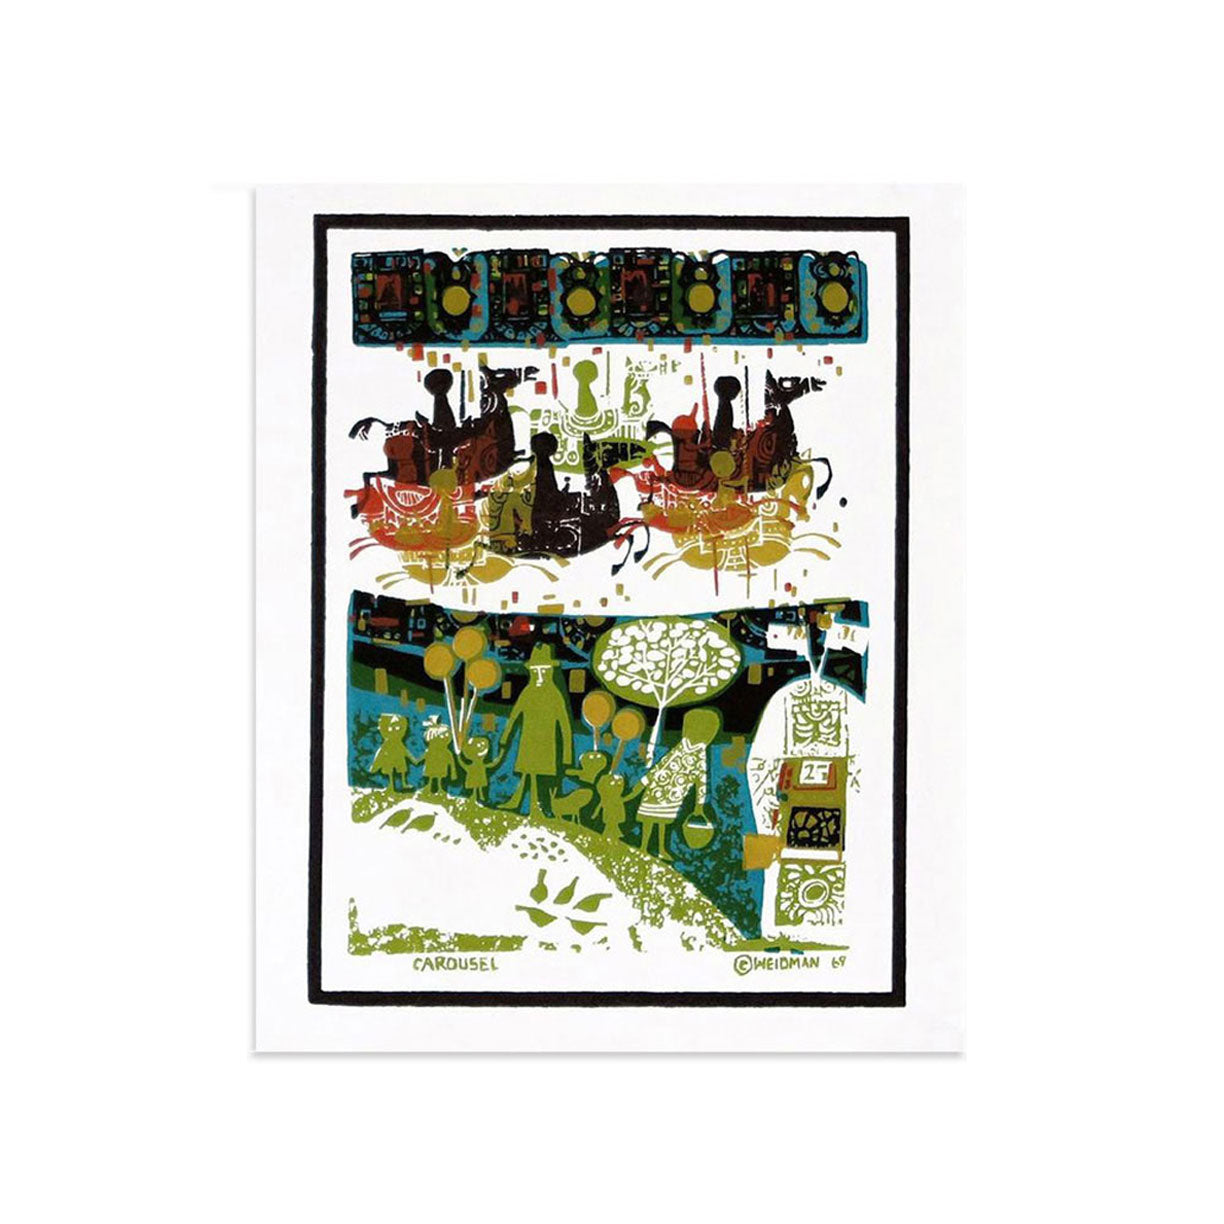 Carousel, mini by David Weidman | Print | Poster Child Prints